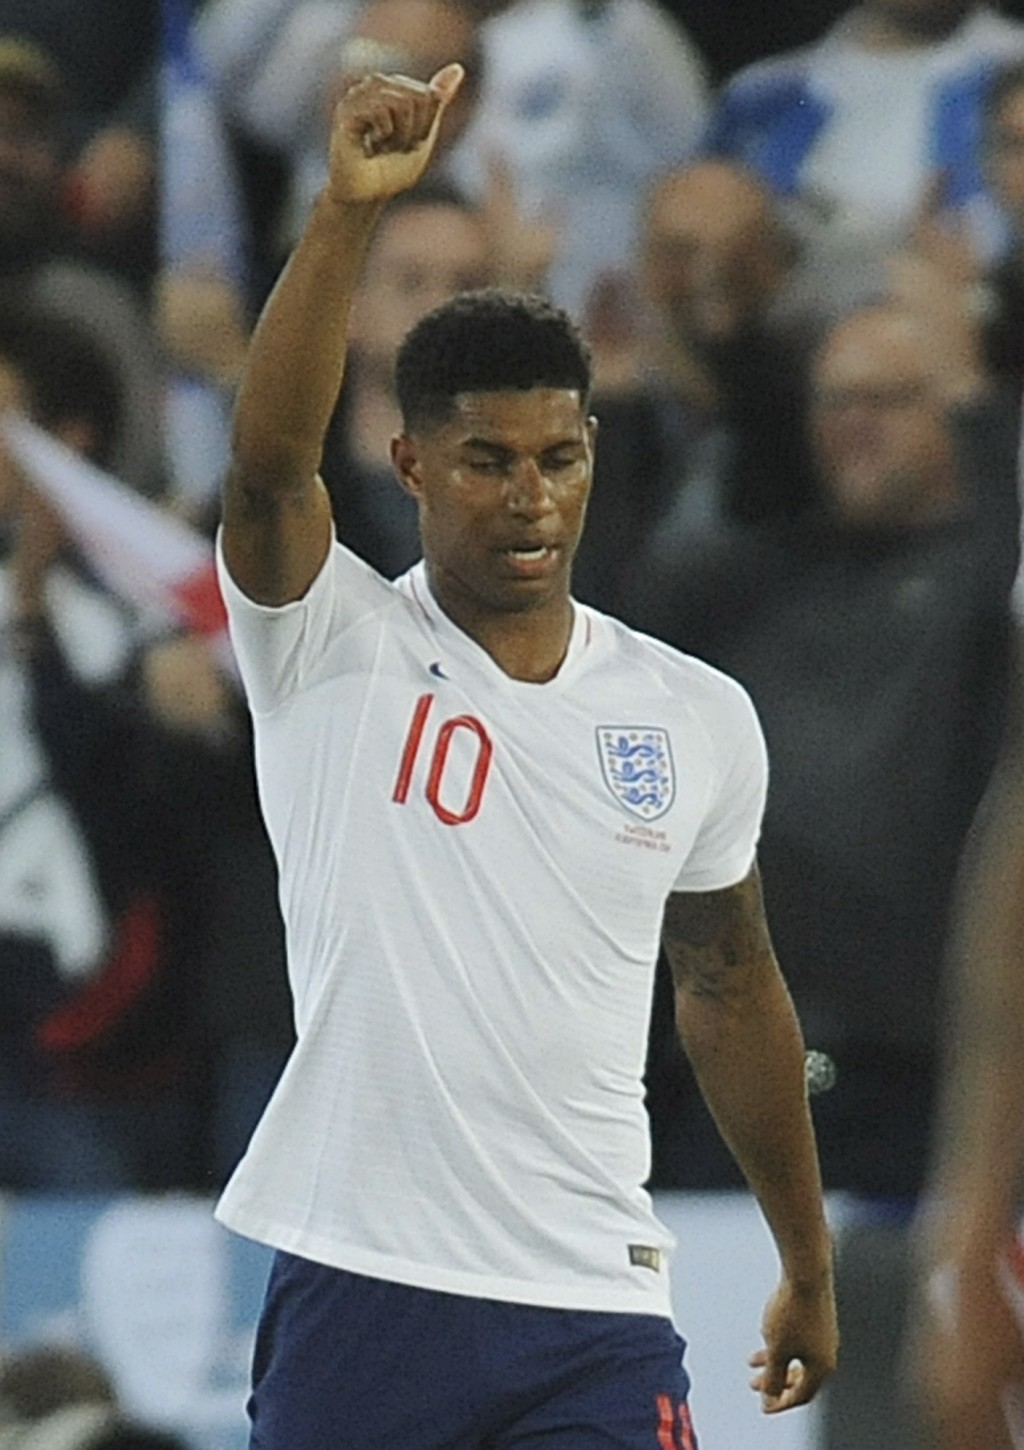 England's Marcus Rashford celebrates after scoring his side's first goal during the International friendly soccer match between England and Switzerlan